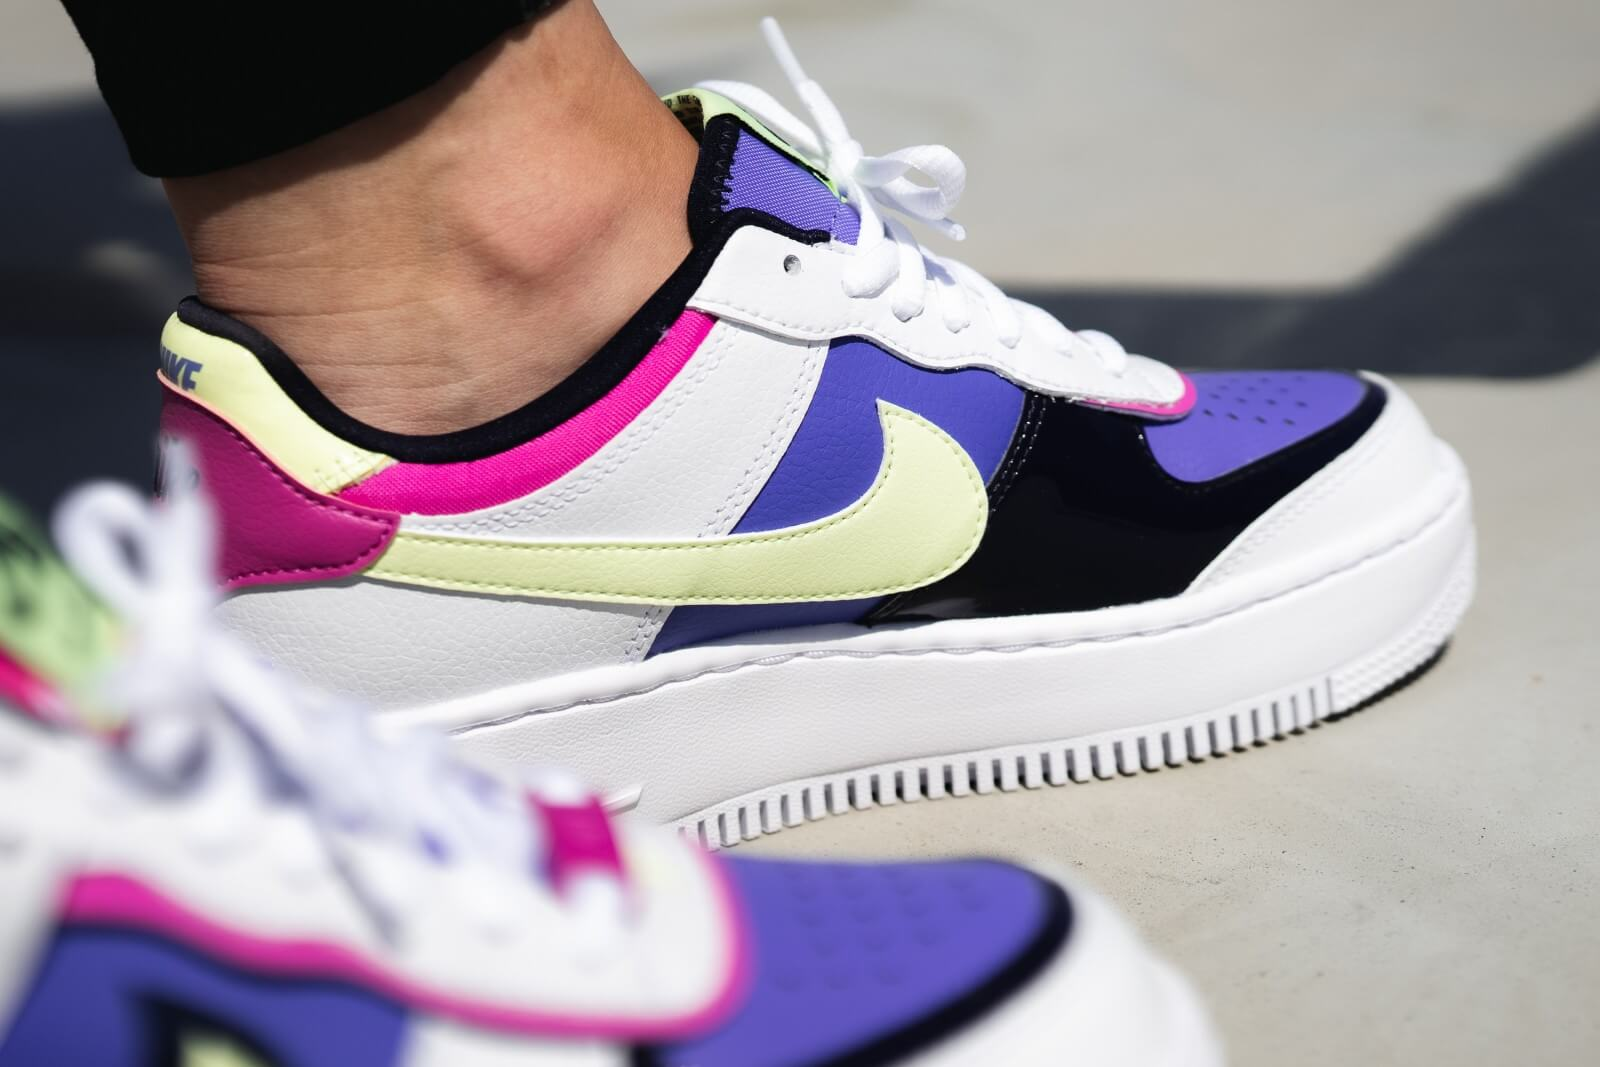 Nike Women S Air Force 1 Shadow White Barely Volt Sapphire Fire Pink Cj1641 100 Sneakers air force 1 shadow di nike. nike women s air force 1 shadow white barely volt sapphire fire pink